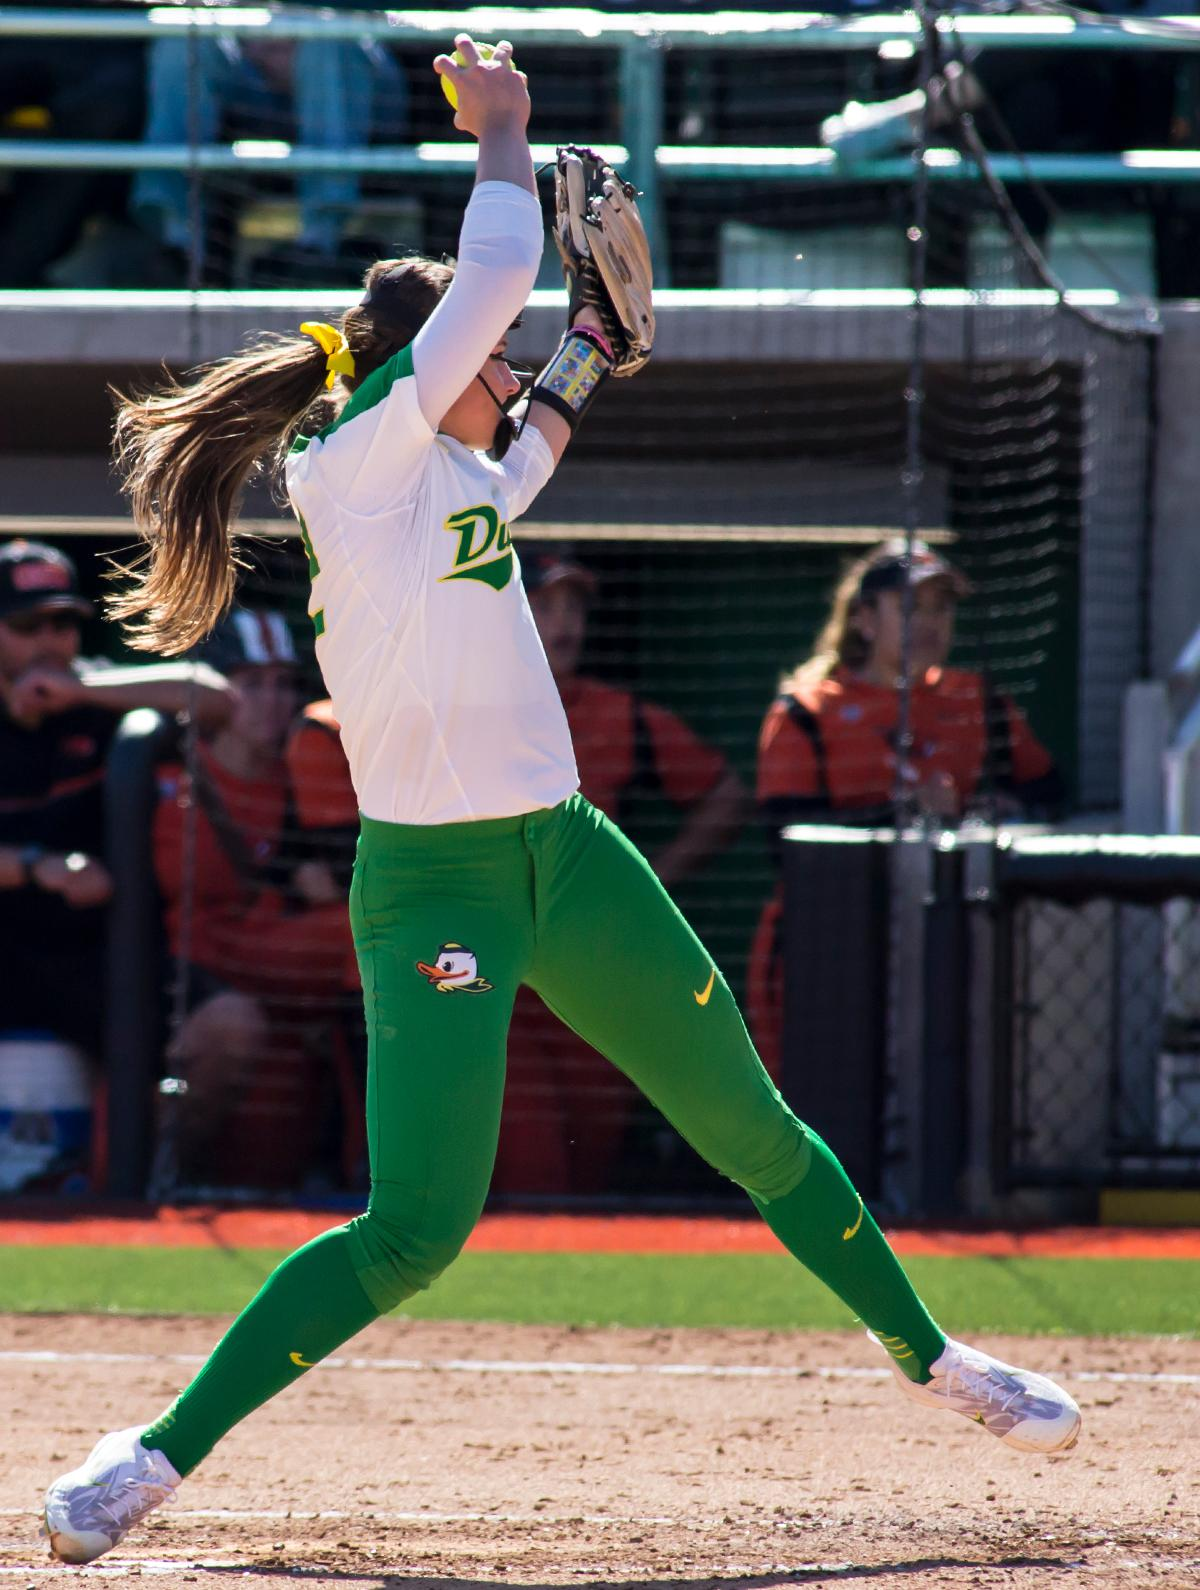 Oregon pitcher Megan Kleist (#22) throws the ball towards home plate. The Oregon Ducks defeated the Oregon State Beavers seven to zero on Sunday, April 30, 2017. The Ducks' victory marked the third victory of the three game sweep against the Beavers. Photo by Ben Lonergan, Oregon News Lab